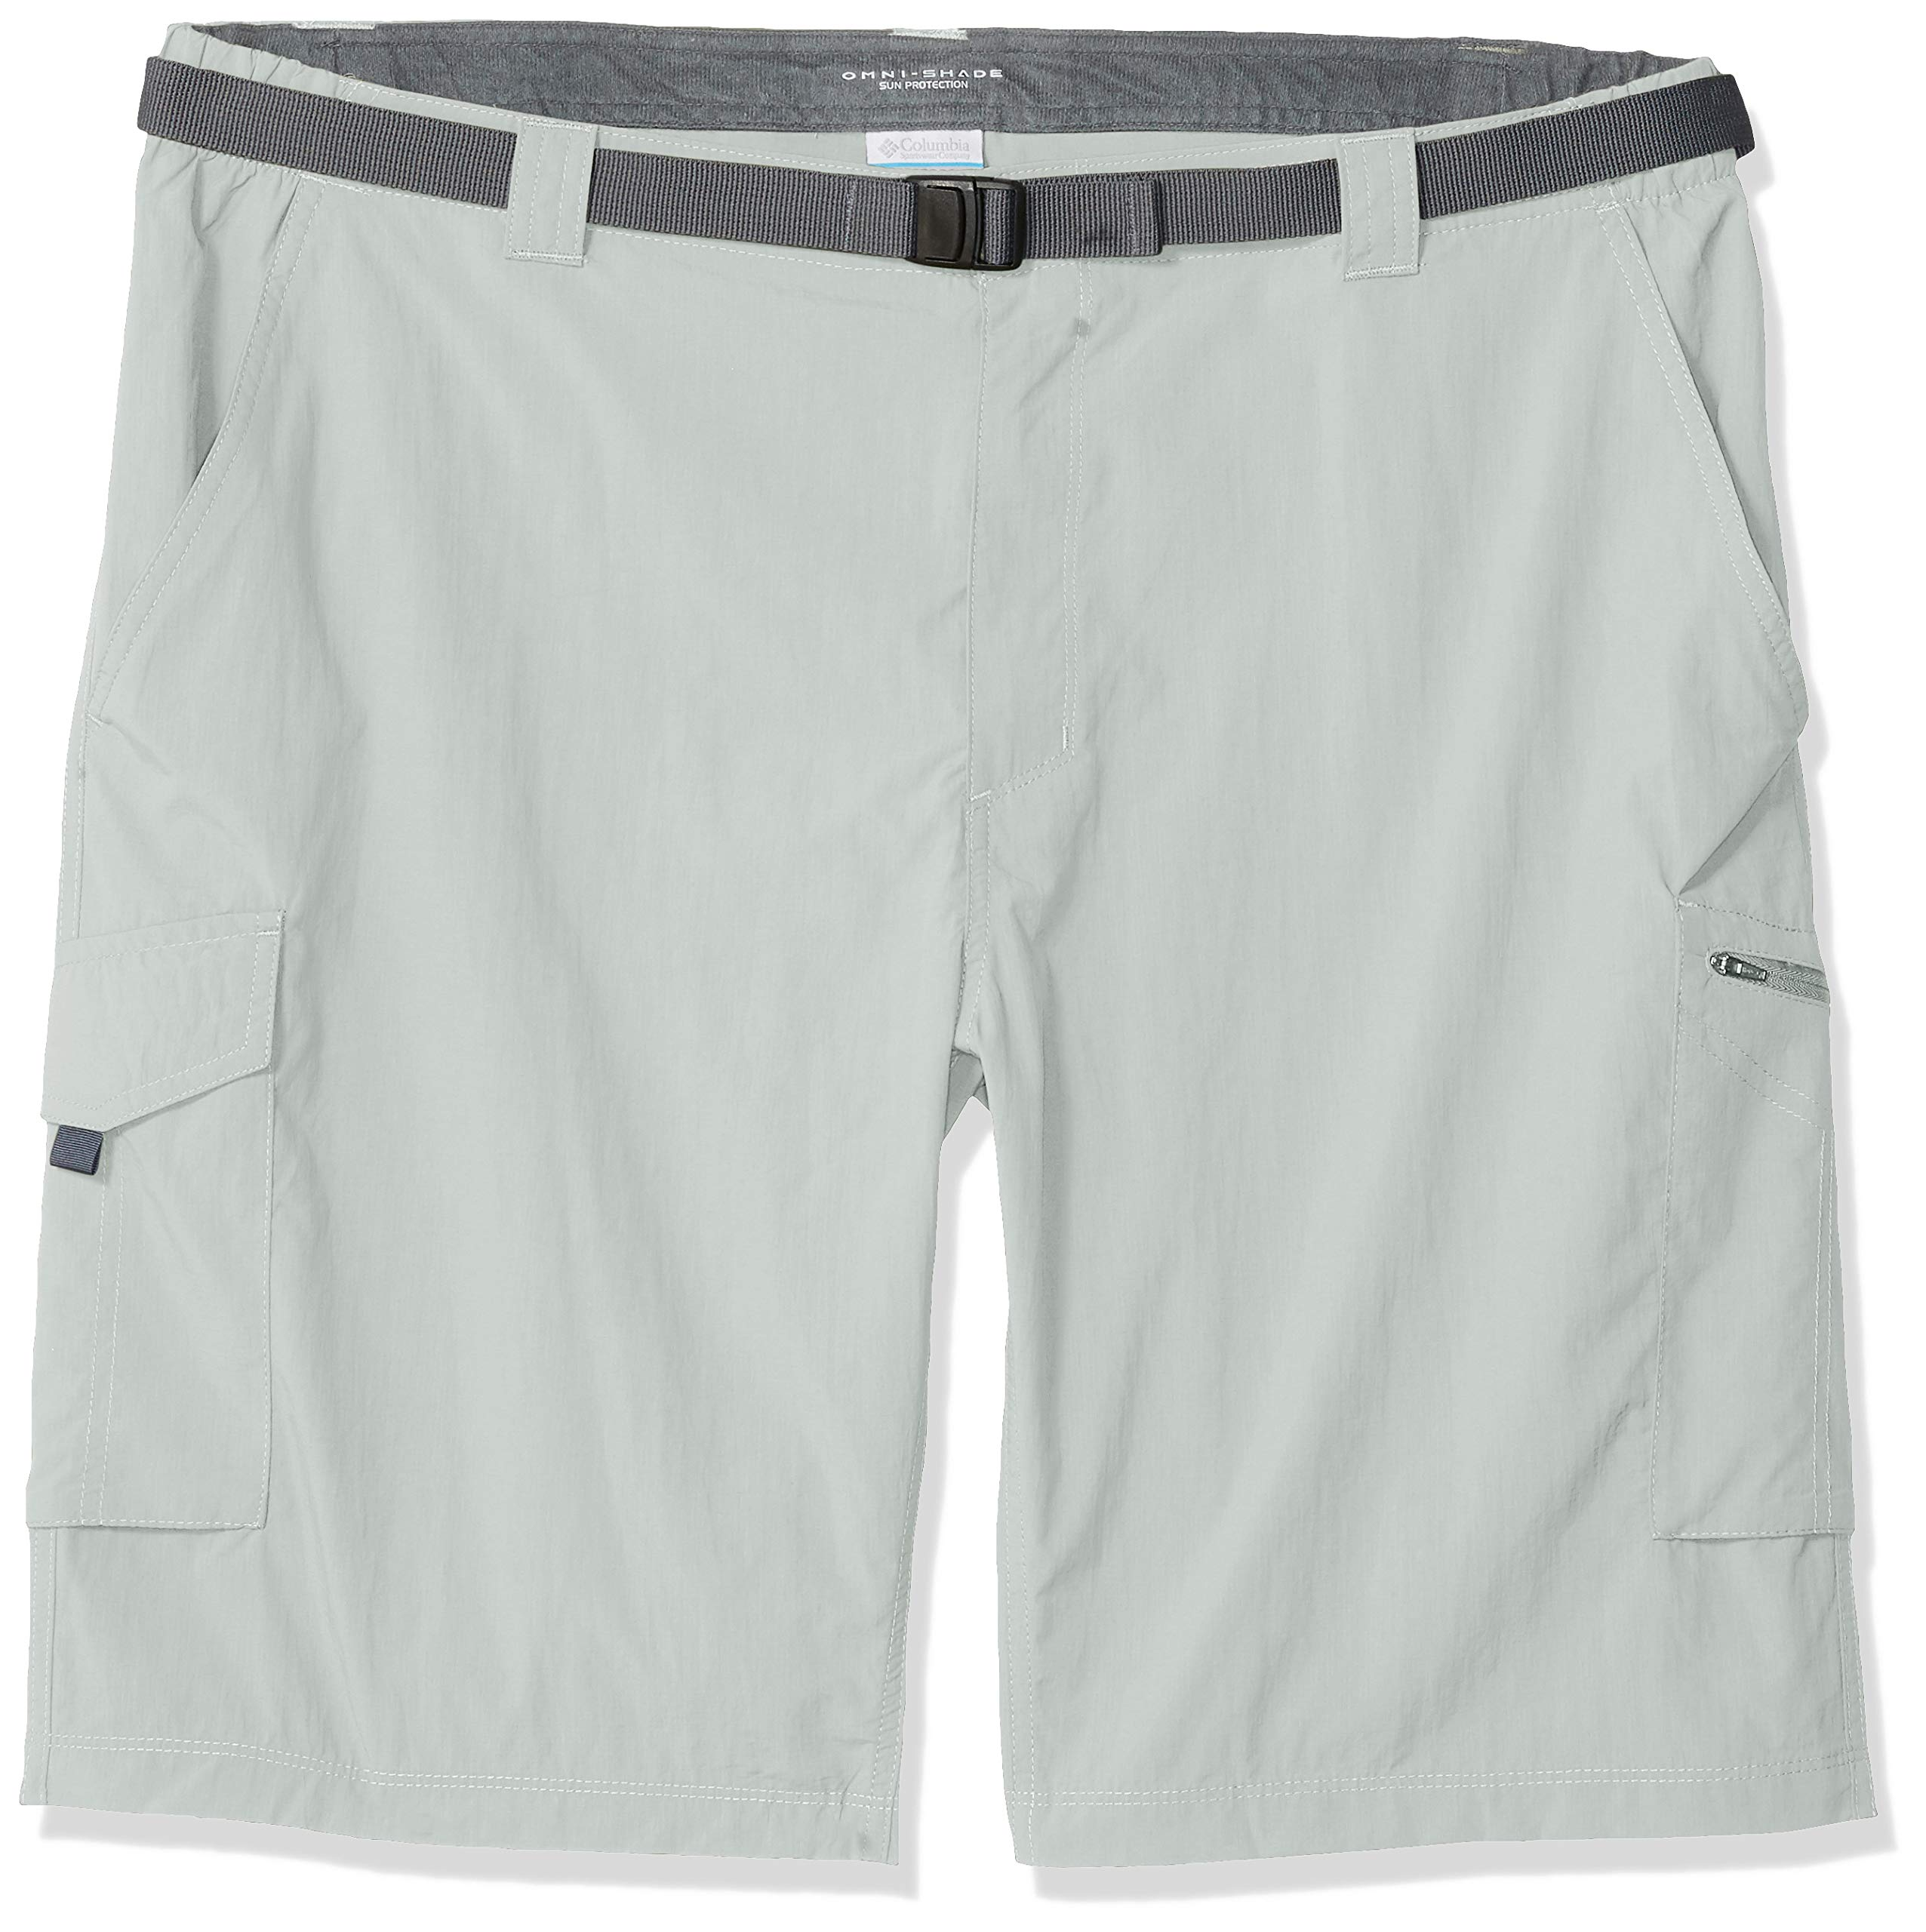 Columbia Men's Silver Ridge Cargo Short, Breathable, UPF 50 Sun Protection, Cool Grey, 30 x 10'' Inseam